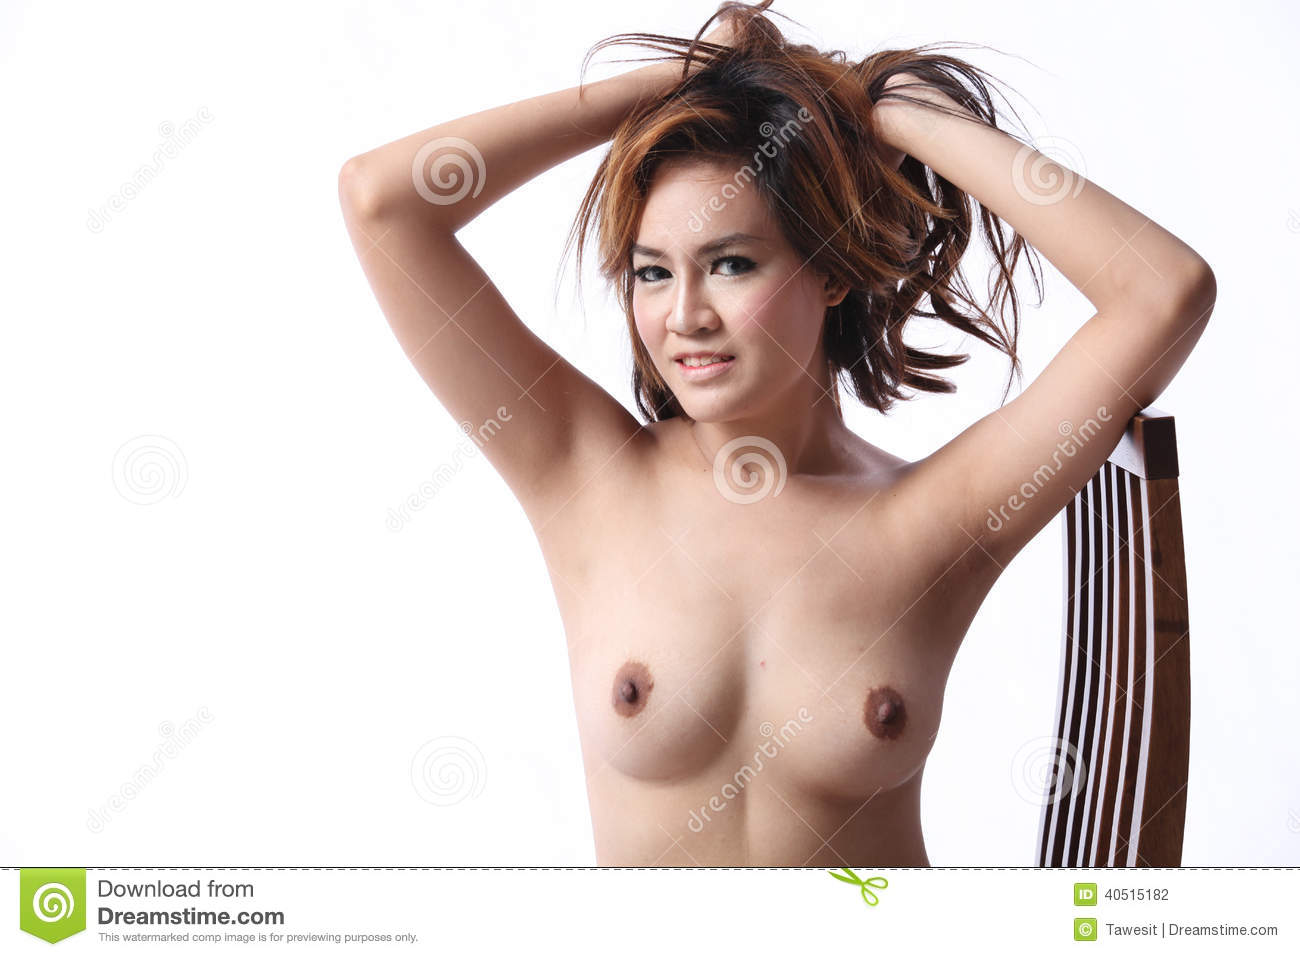 Asian topless models